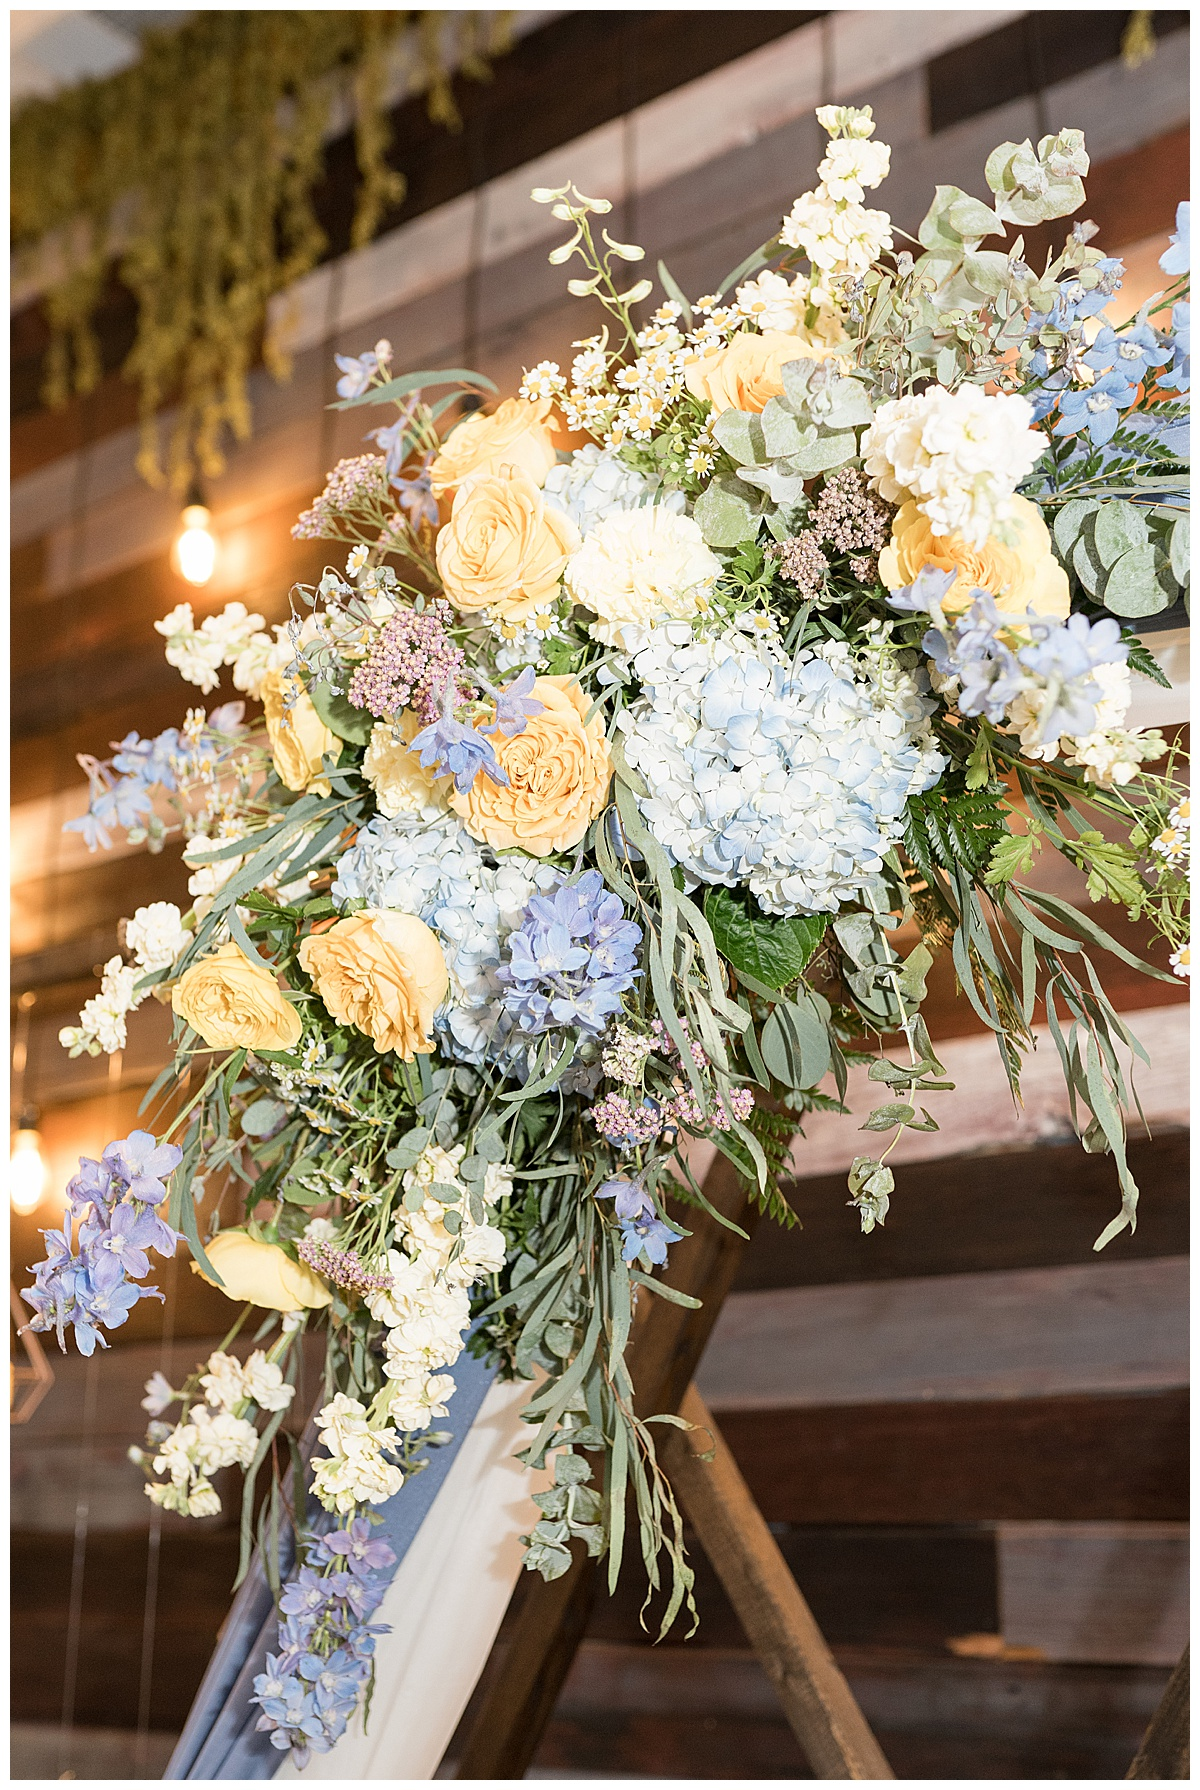 Reception details for Gathering Acres wedding in Lafayette, Indiana